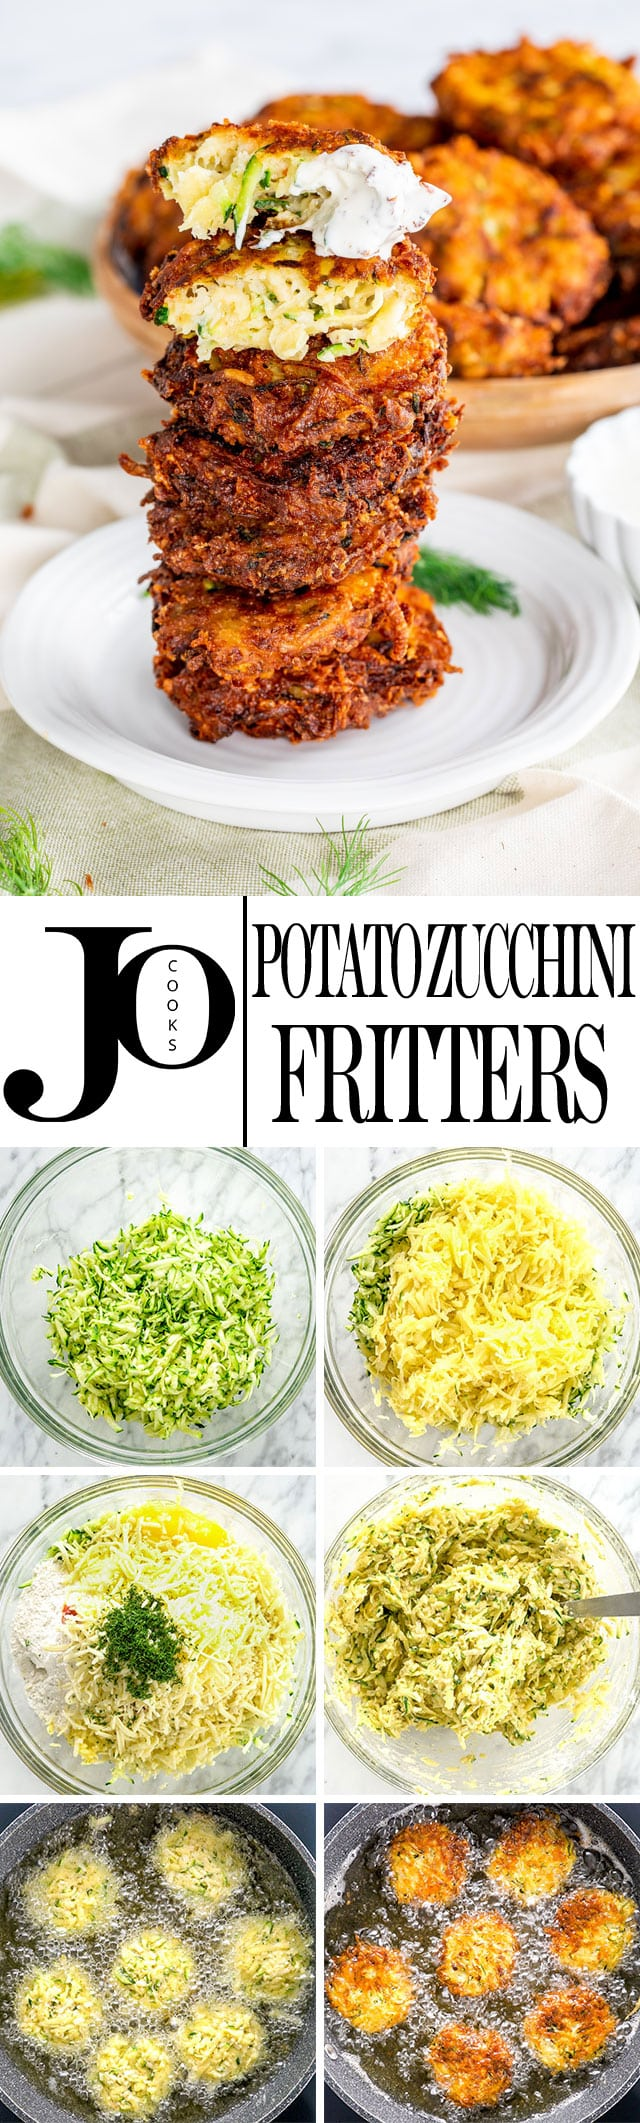 These Potato Zucchini Fritters are loaded with potatoes, zucchini and mozzarella cheese. They are so good, they'll be gone before you're done frying them all. #zucchini #potatozucchinifritters #zucchinifritters